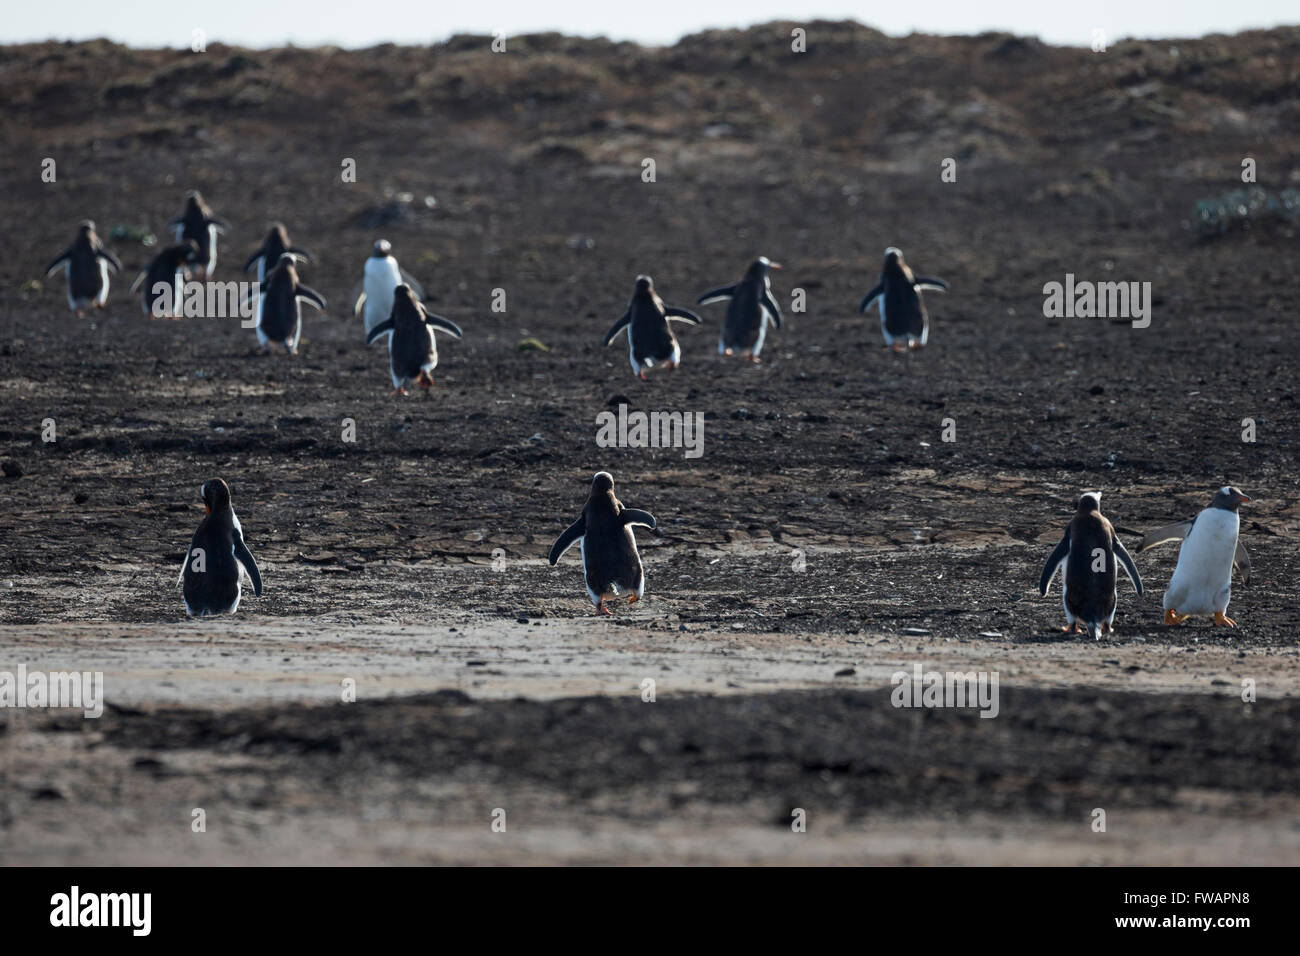 Gentoo penguin Pygoscelis papua, group walking back to their colony, Sea Lion Island, Falkland Islands in December. - Stock Image